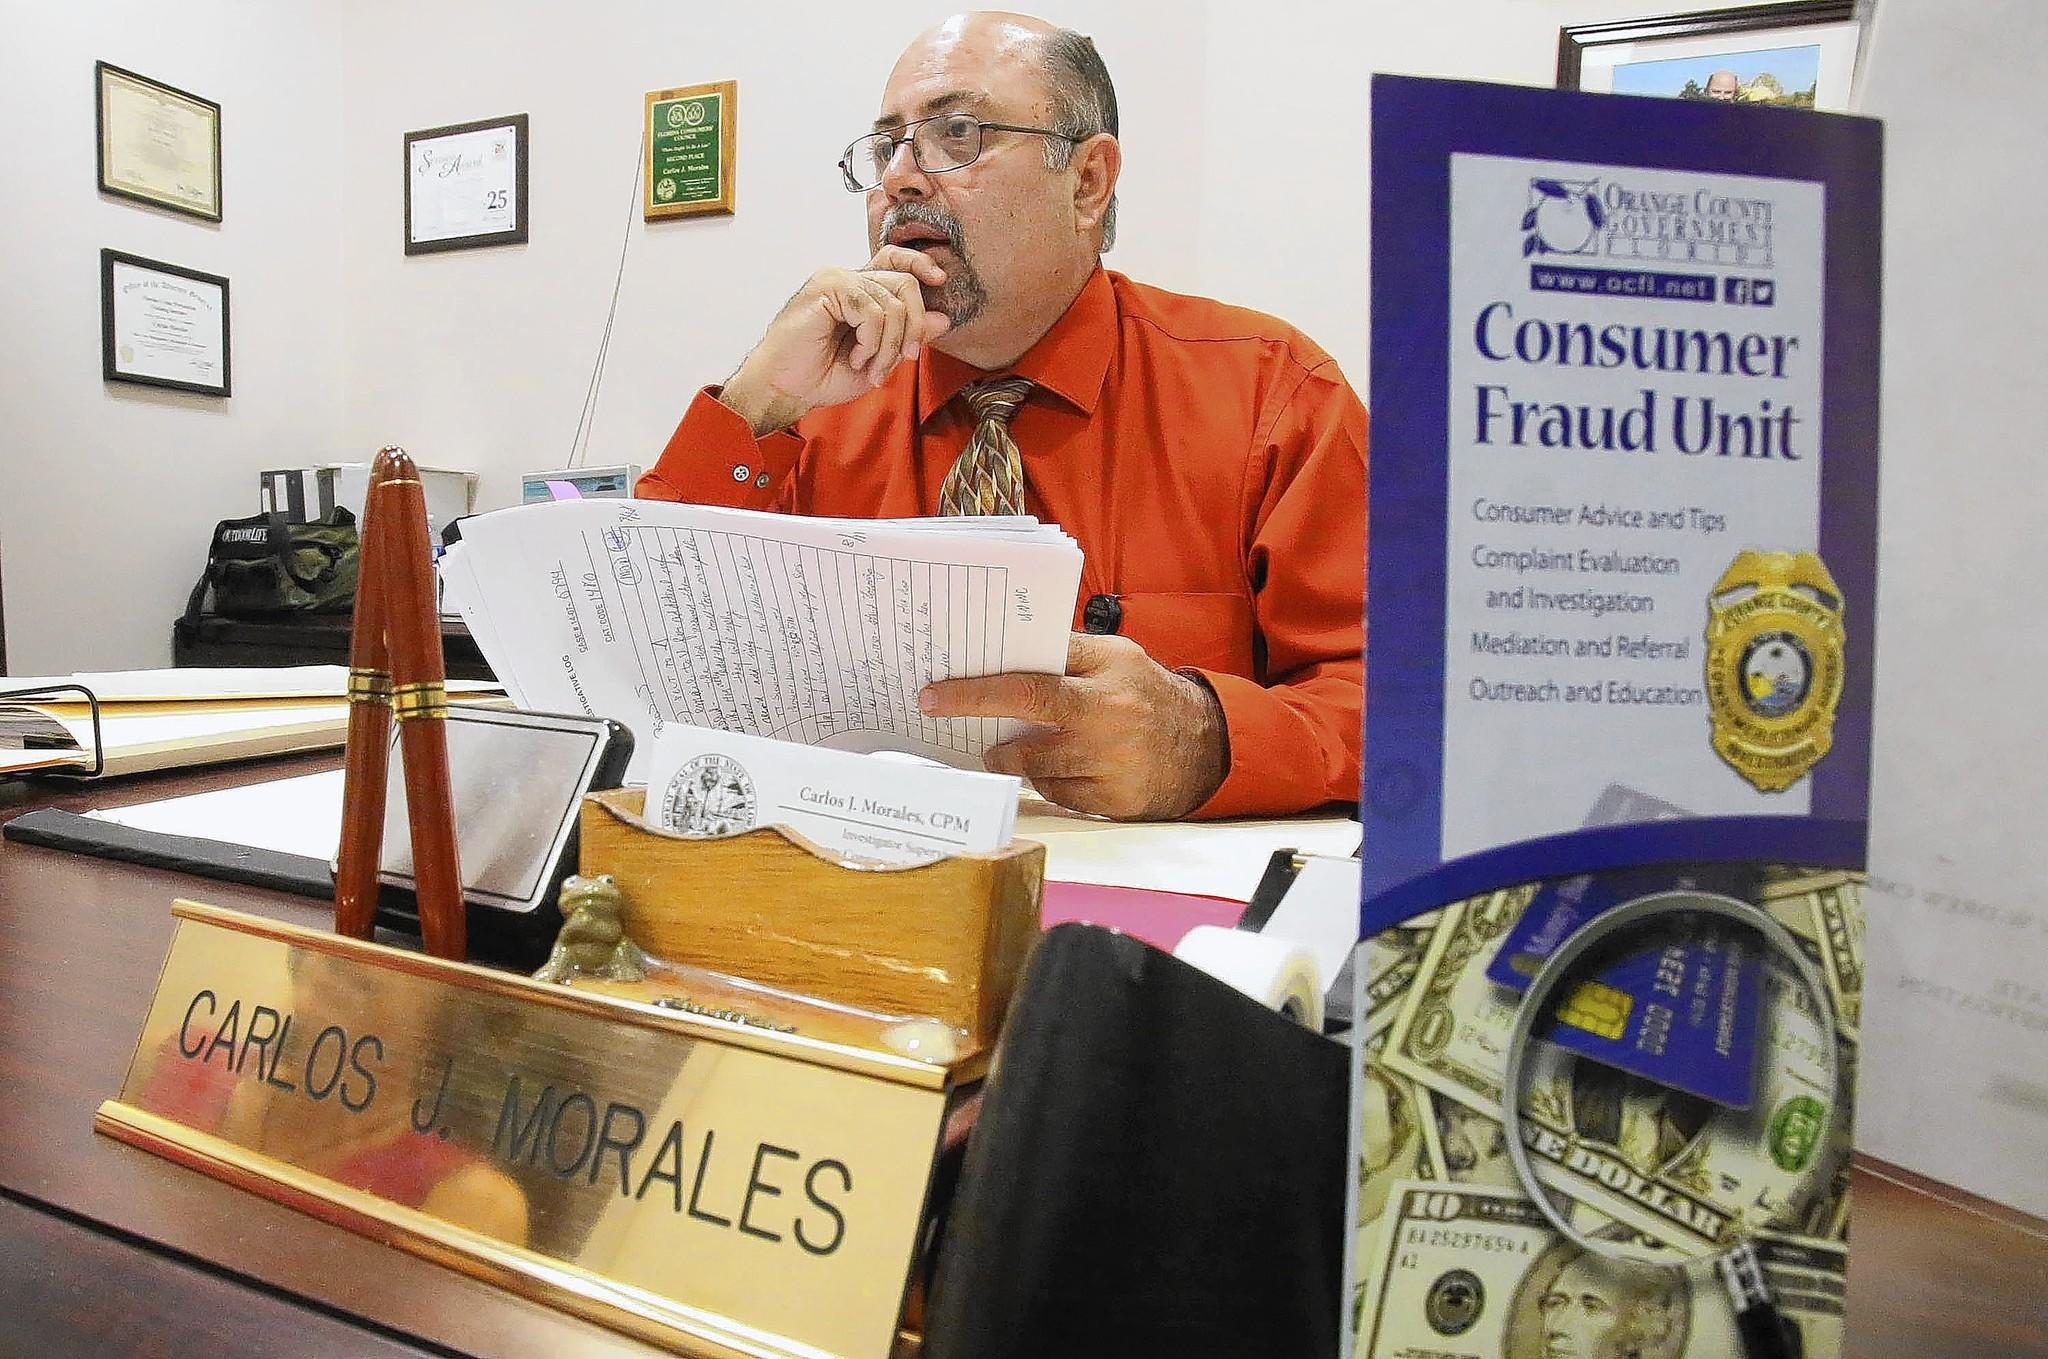 Carlos J. Morales, a supervisor in the Orange County Consumer Fraud Unit, looks through some recent fraud cases.